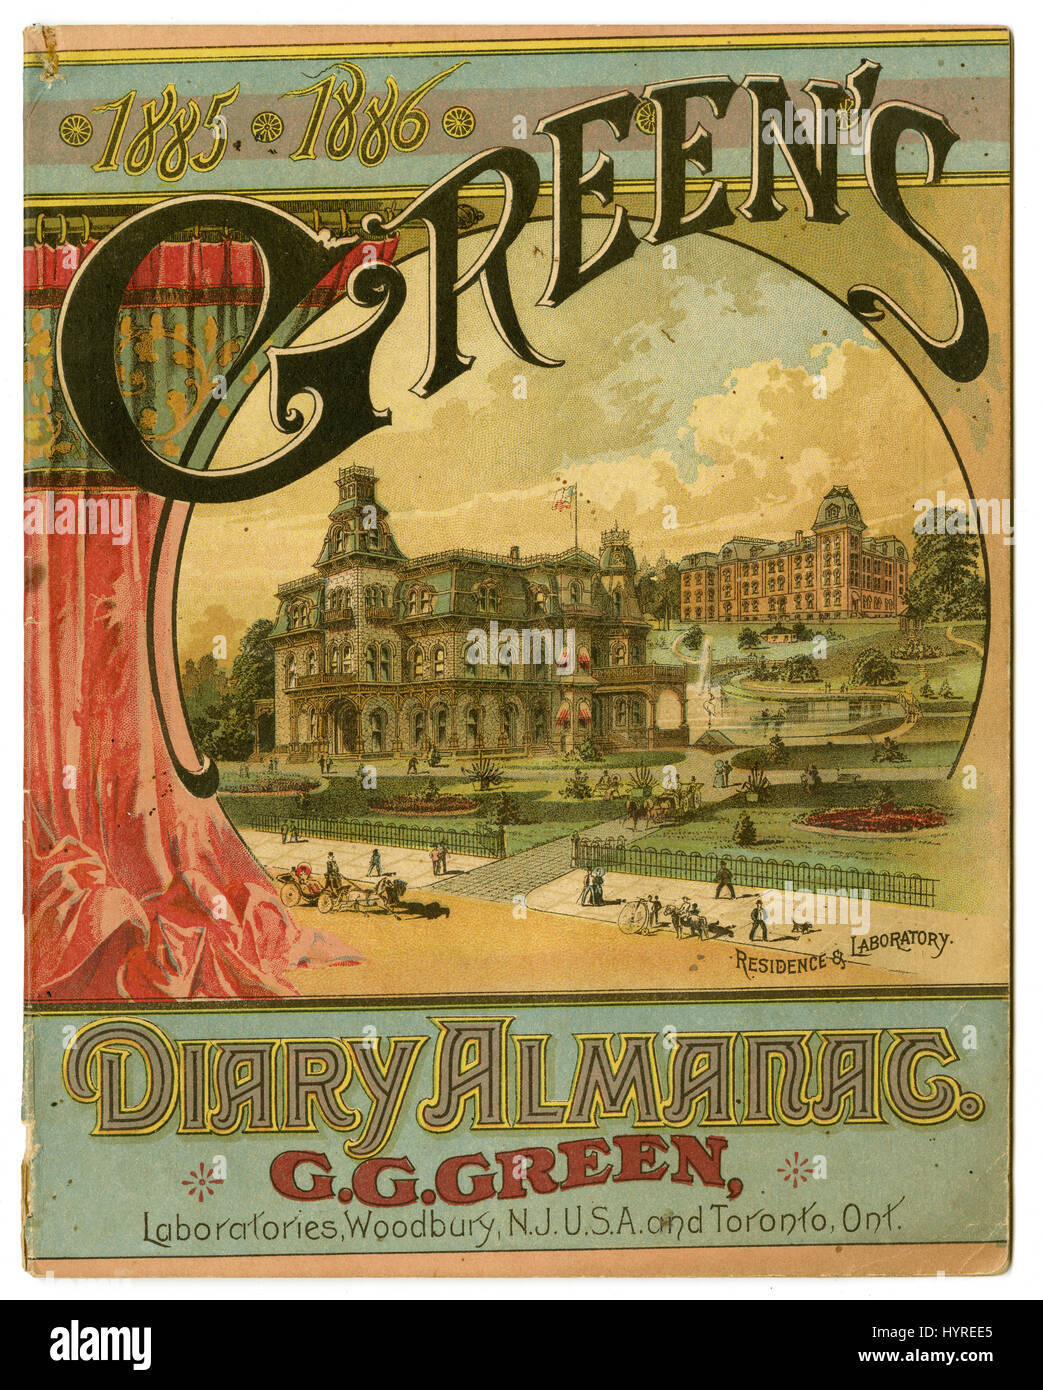 Cover of the 1885-1886 Green's Diary Almanac by G.G. Green, showing the Residence & Laboratory in Woodbury, - Stock Image